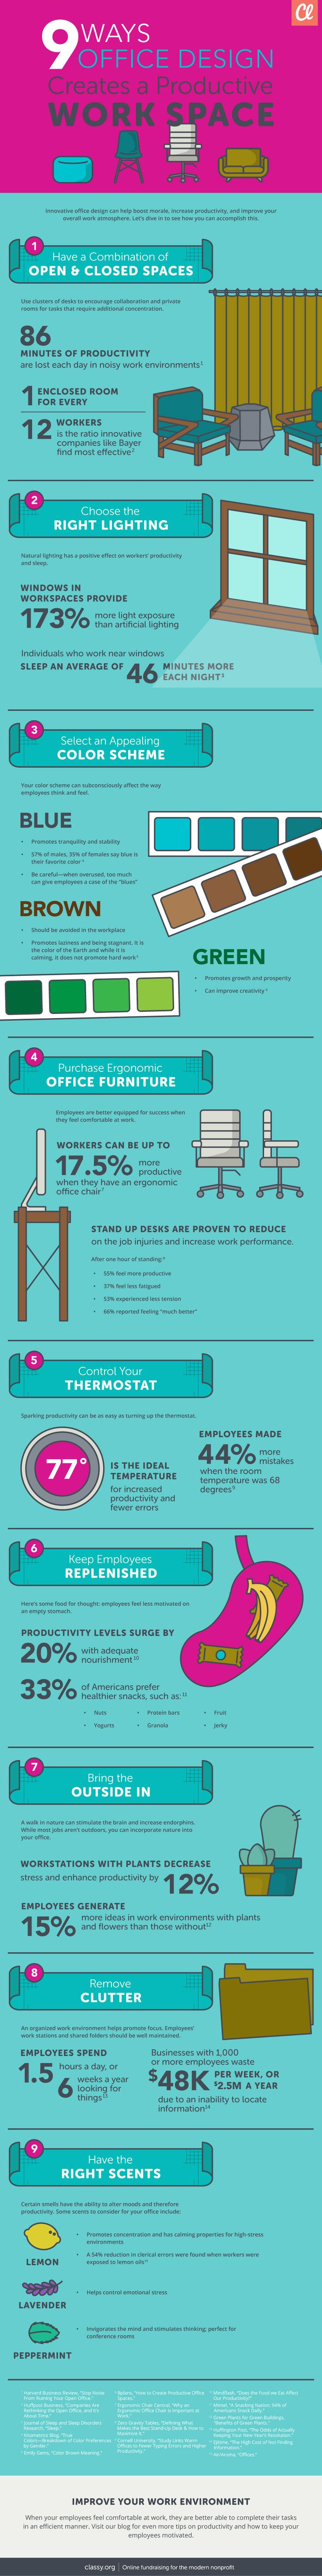 25 best ideas about office space design on pinterest - Us department of the interior jobs ...